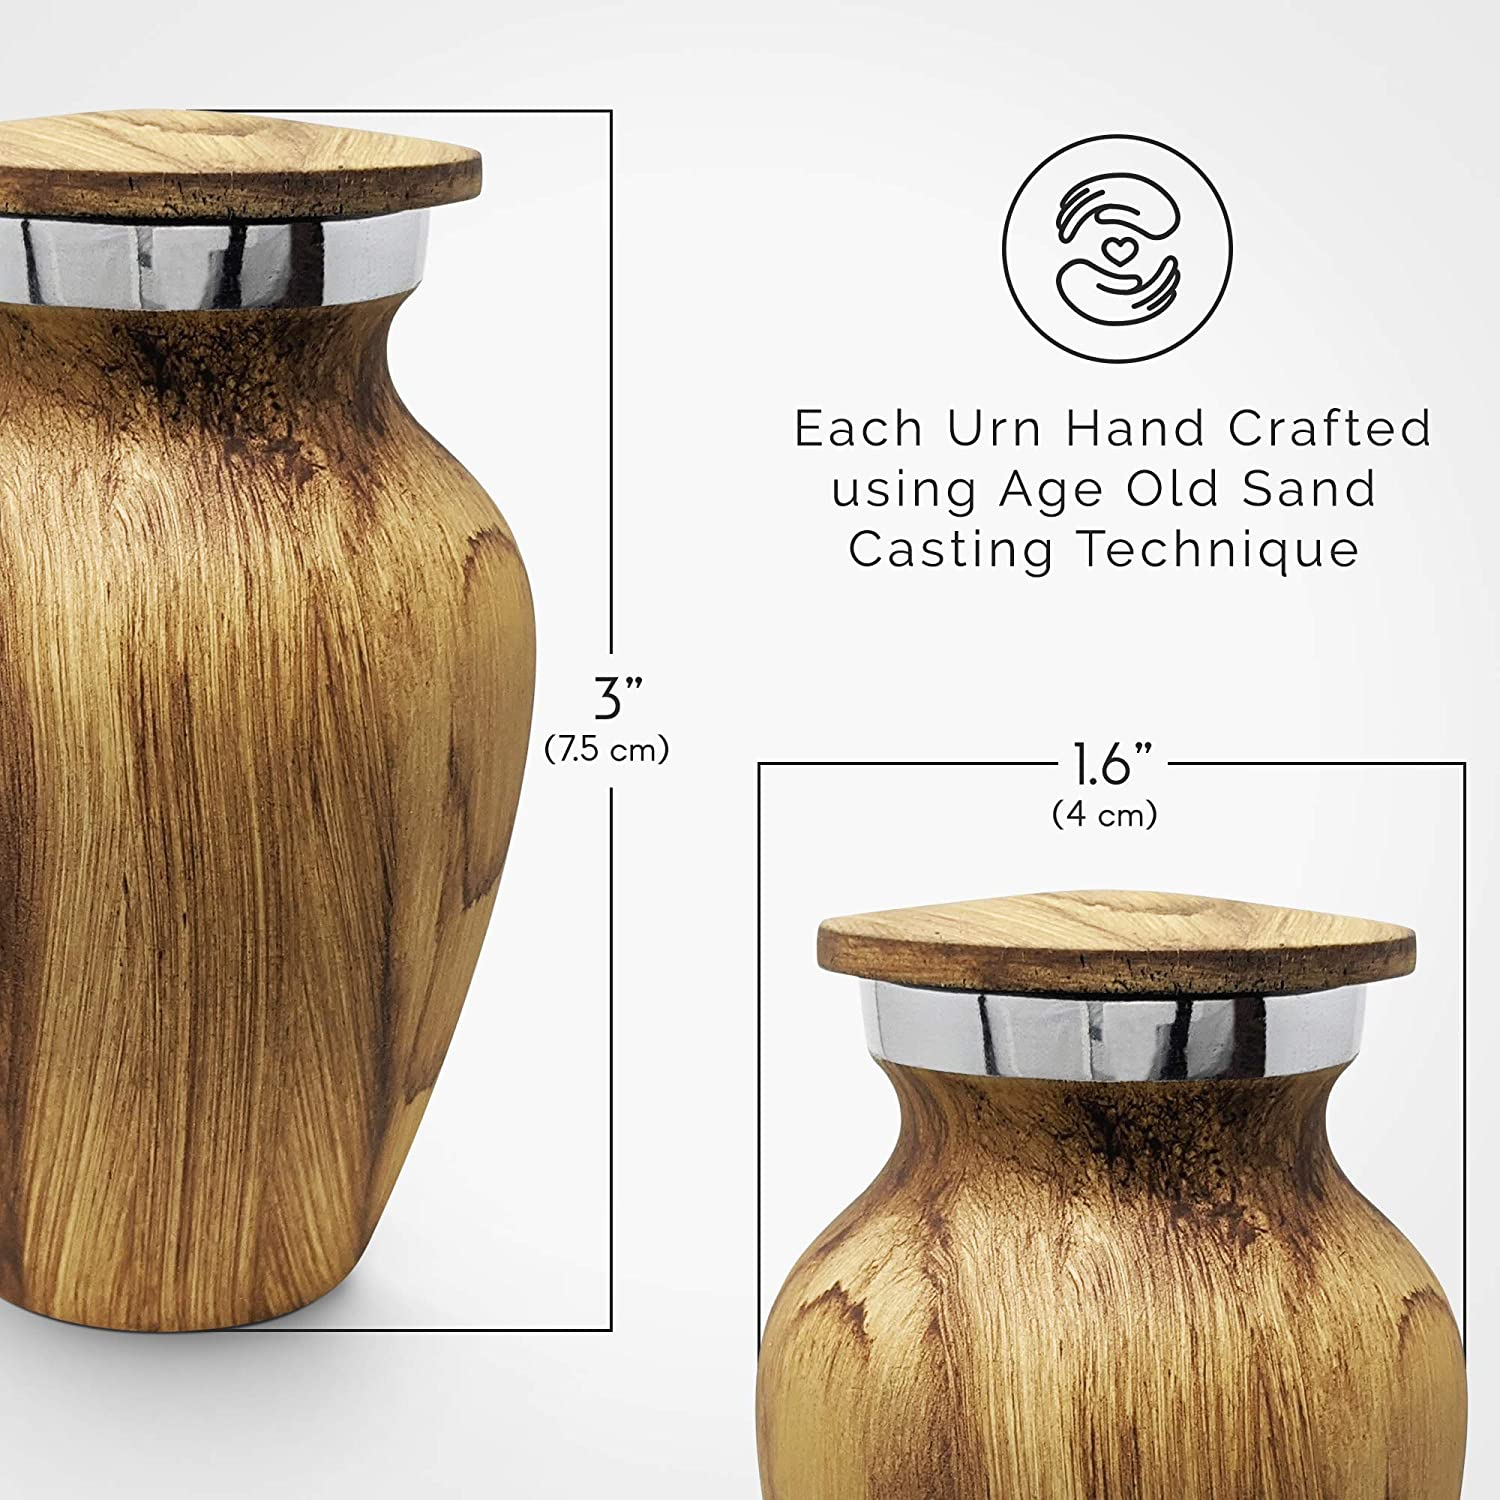 Kc Katie Collection By Urnseller Small Keepsake Cremation Urn For Human Ashes Aluminum With Wood Grain Finish Mini Metal Sharing Personal Funeral Urn For Pet Or Human Ashes Oak Home